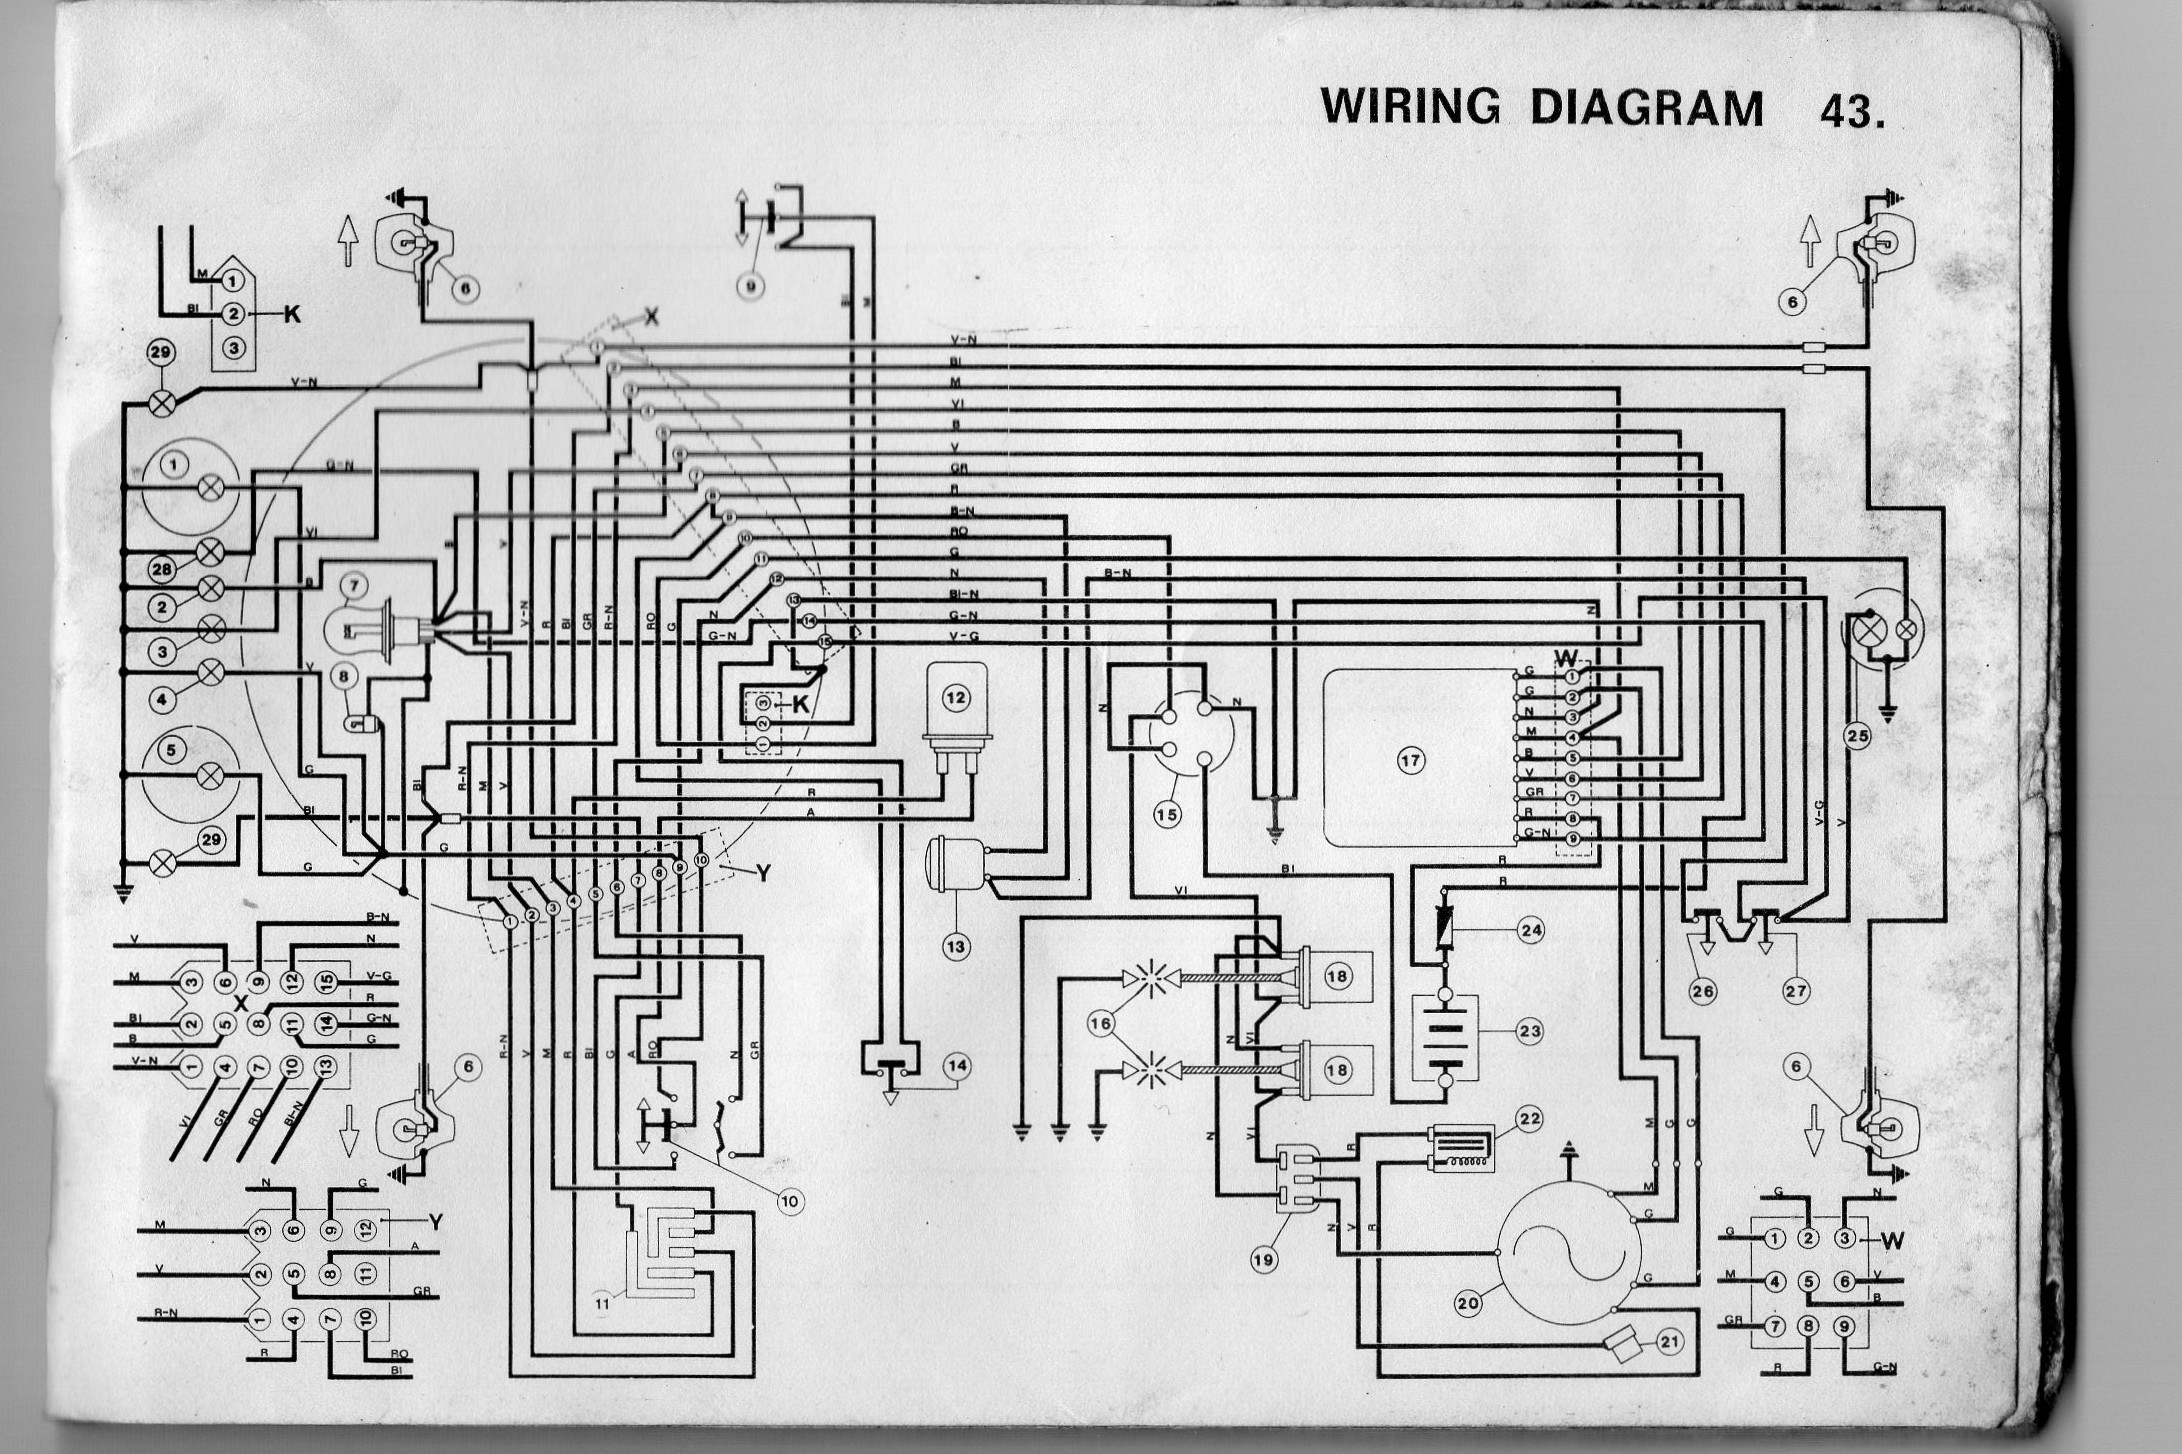 Ts250 Wiring Diagram Page 2 And Schematics 1970 Kawasaki 250 For You All U2022 Rh Onlinetuner Co Mz Ts